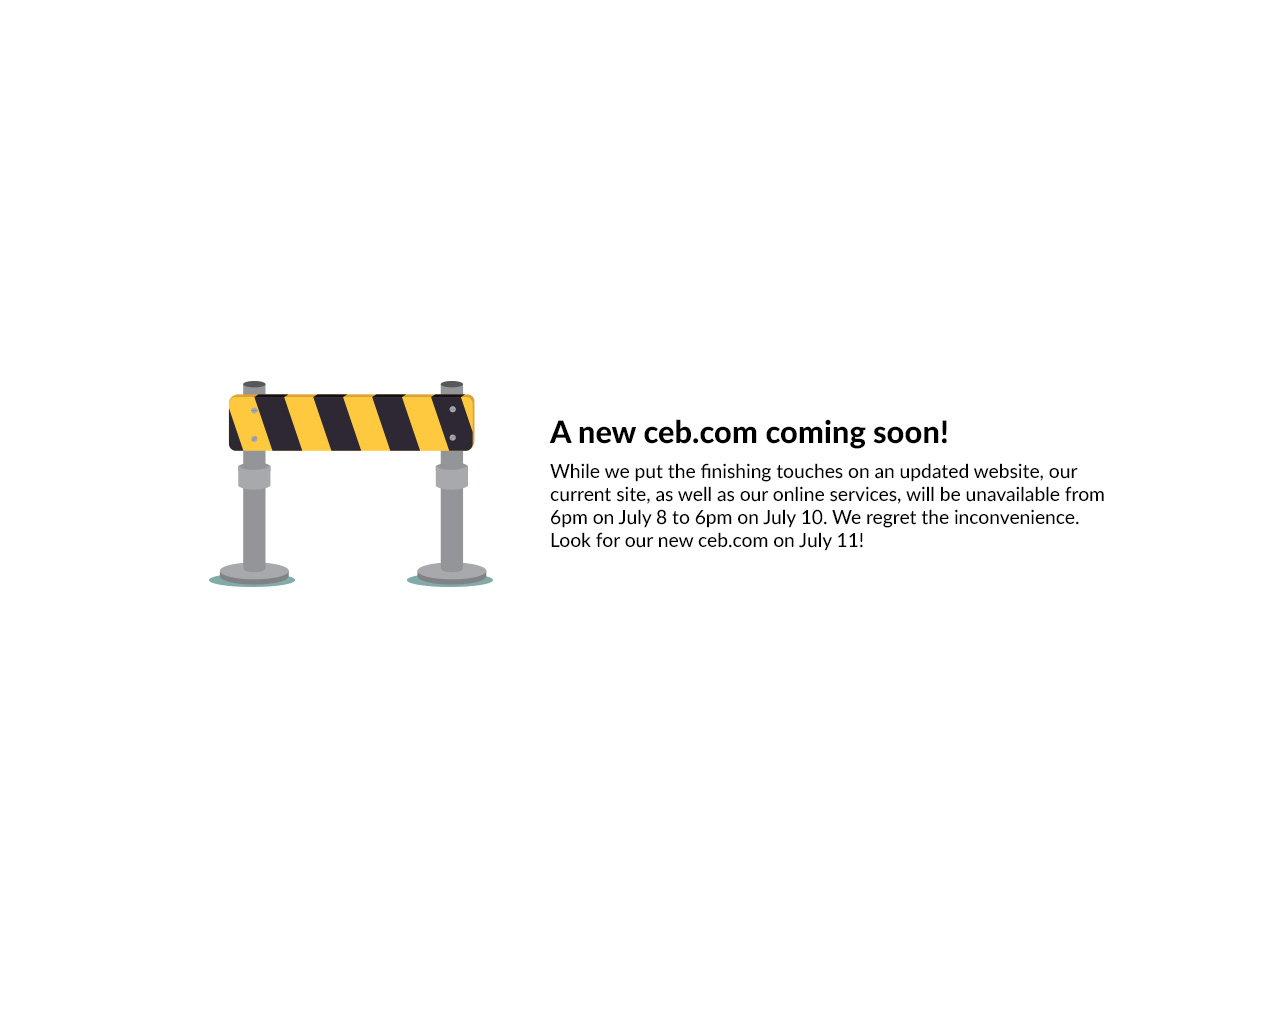 A New CEB.com Coming Soon! CEB will be unavailable from 6pm july 8 to 6pm july 10. We will be back up July 11.